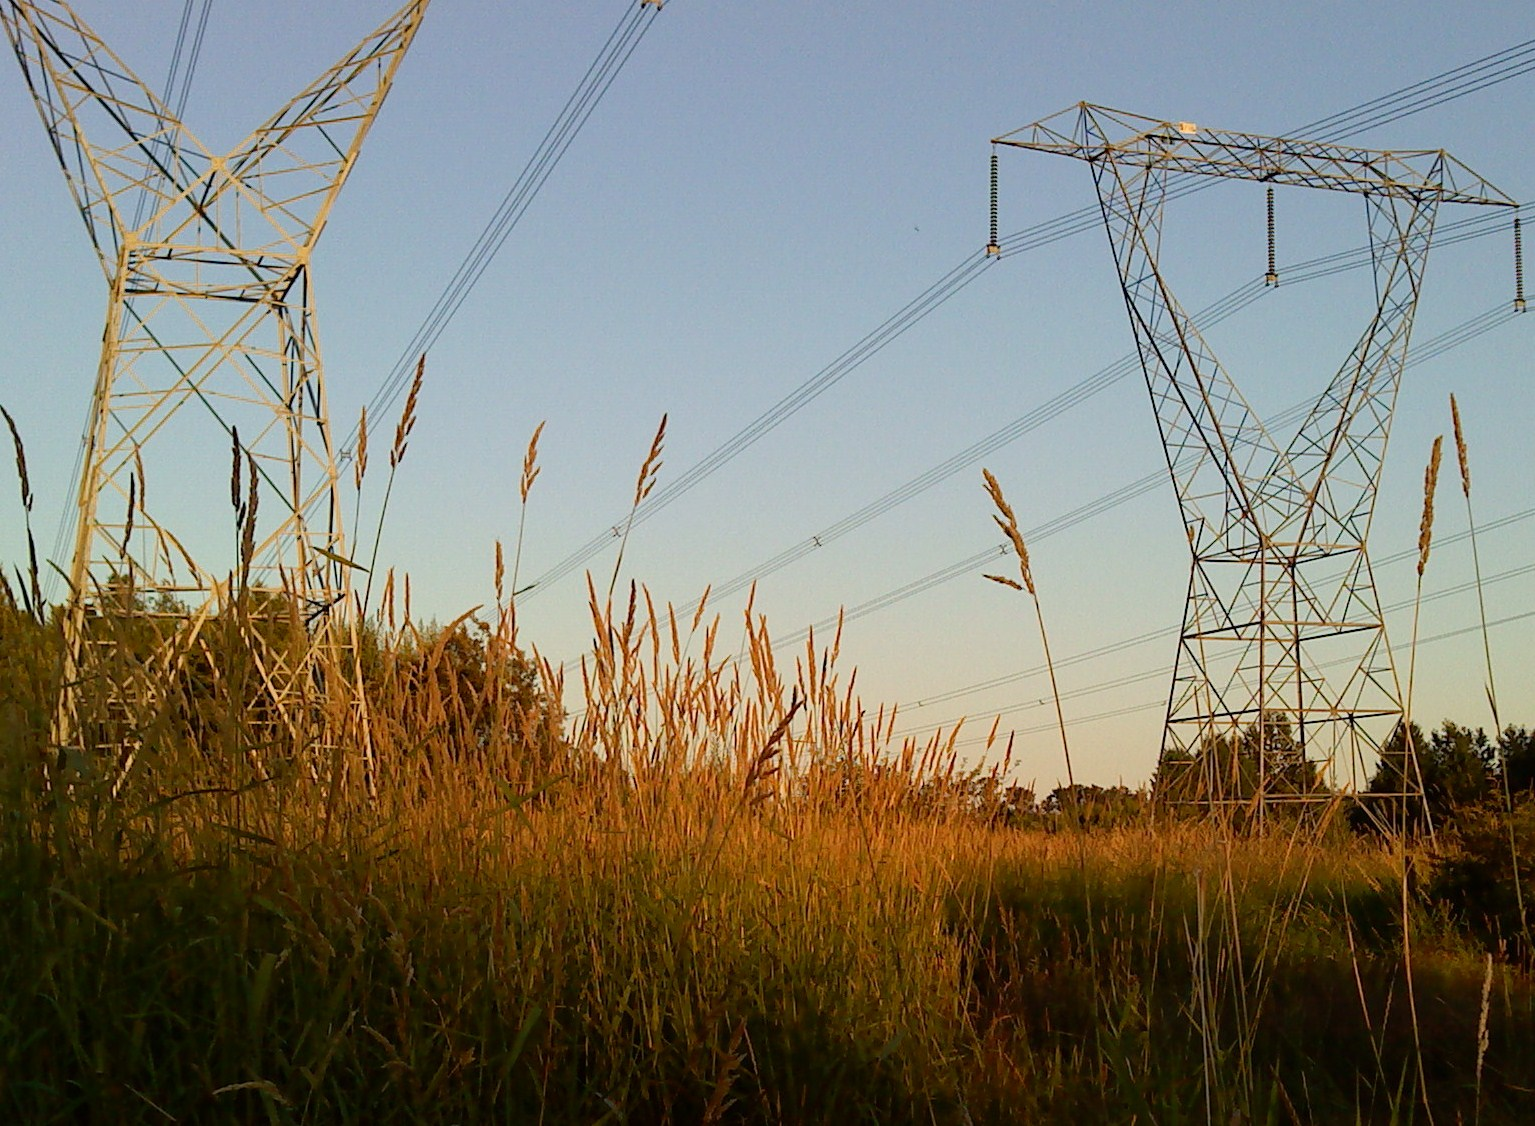 light in essay robber barons essay andrew carnegie robber  essay eh summer evening walk crossed by power lines the nature trail in bear creek park